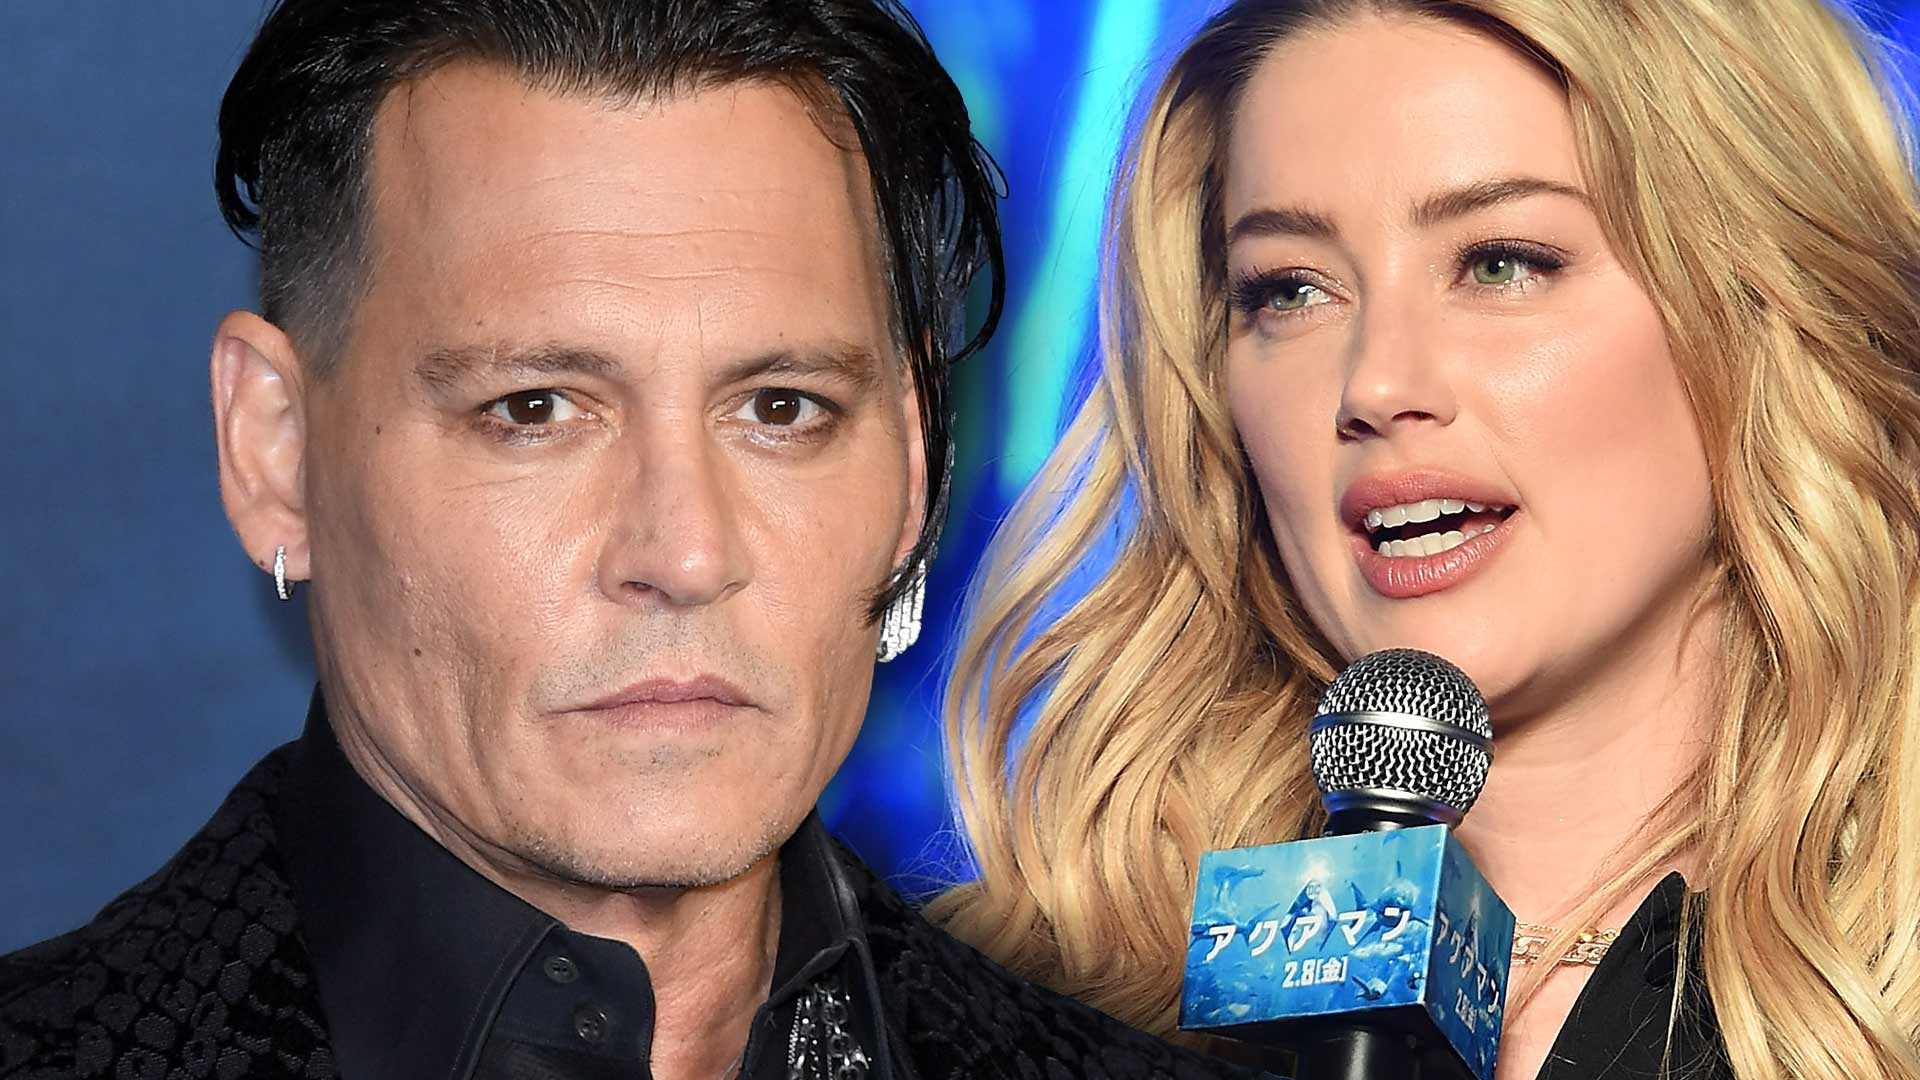 jhonny-depp-defamation-lawsuit